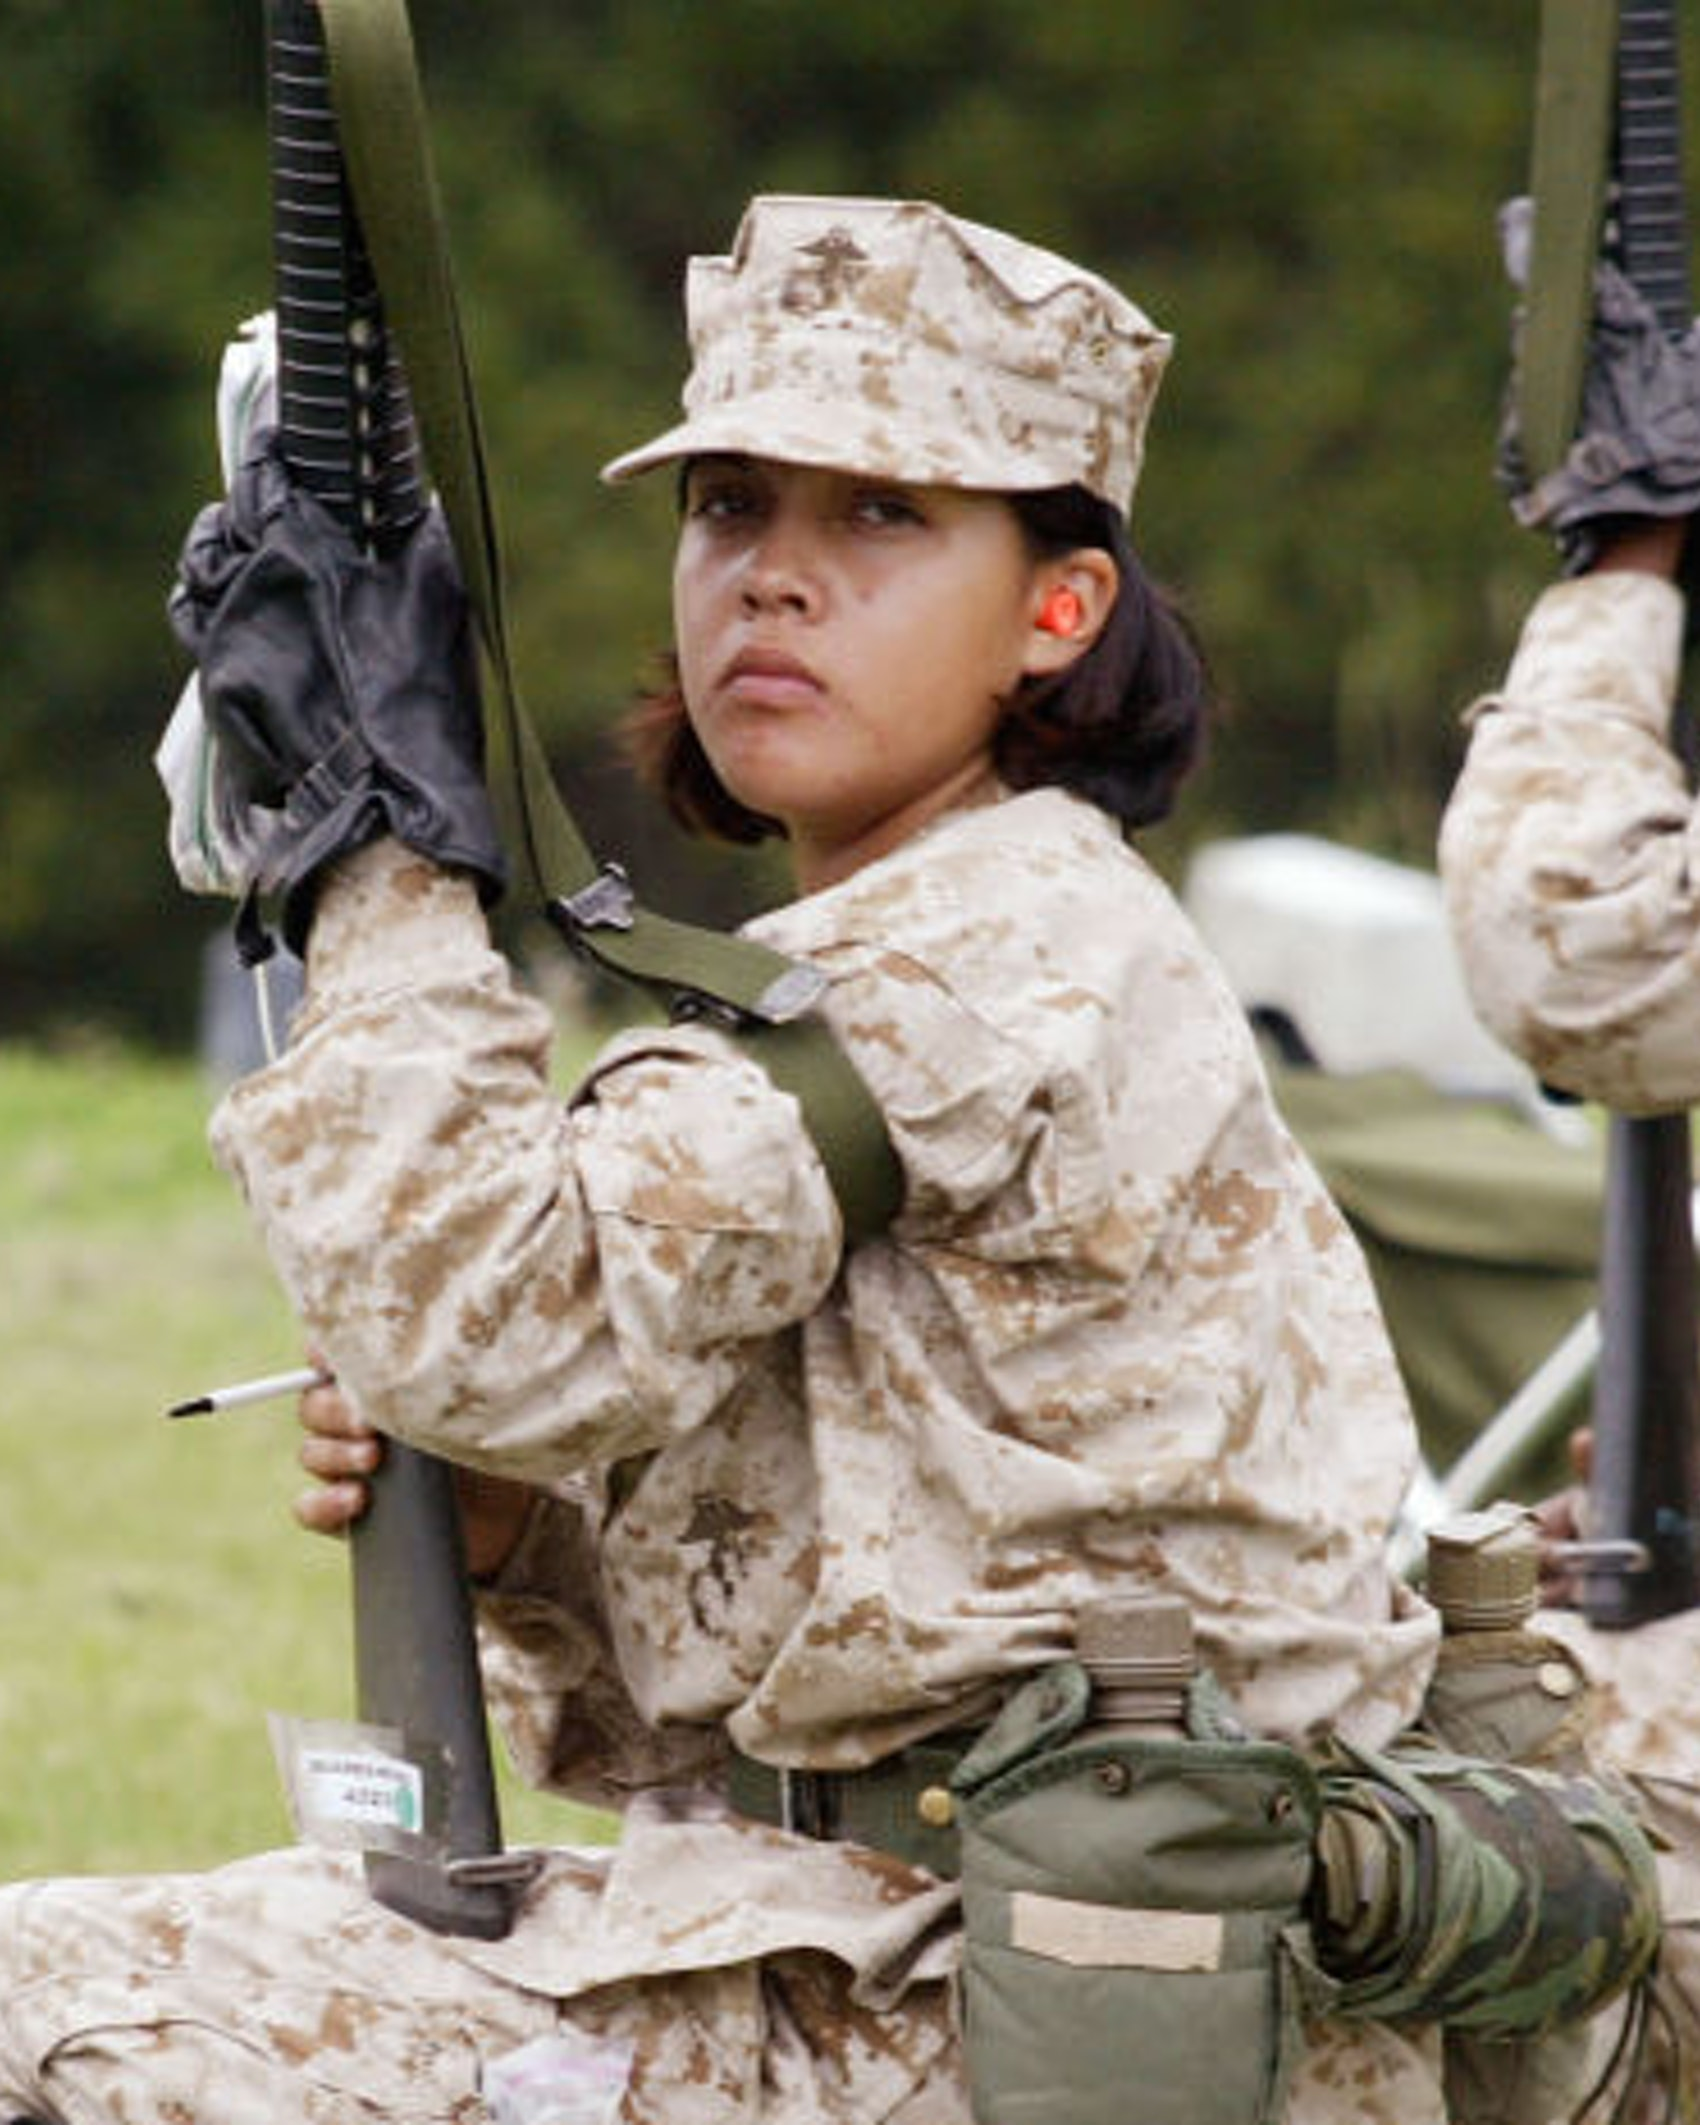 PARRIS ISLAND, SC - JUNE 21: Female Marine Corps recruits wait for a turn to shoot on the rifle range at the United States Marine Corps recruit depot June 21, 2004 in Parris Island, South Carolina. Marine Corps boot camp, with its combination of strict discipline and exhaustive physical training, is considered the most rigorous of the armed forces recruit training. Congress is currently considering bills that could increase the size of the Marine Corps and the Army to help meet US military demands in Iraq and Afghanistan. (Photo by Scott Olson/Getty Images)